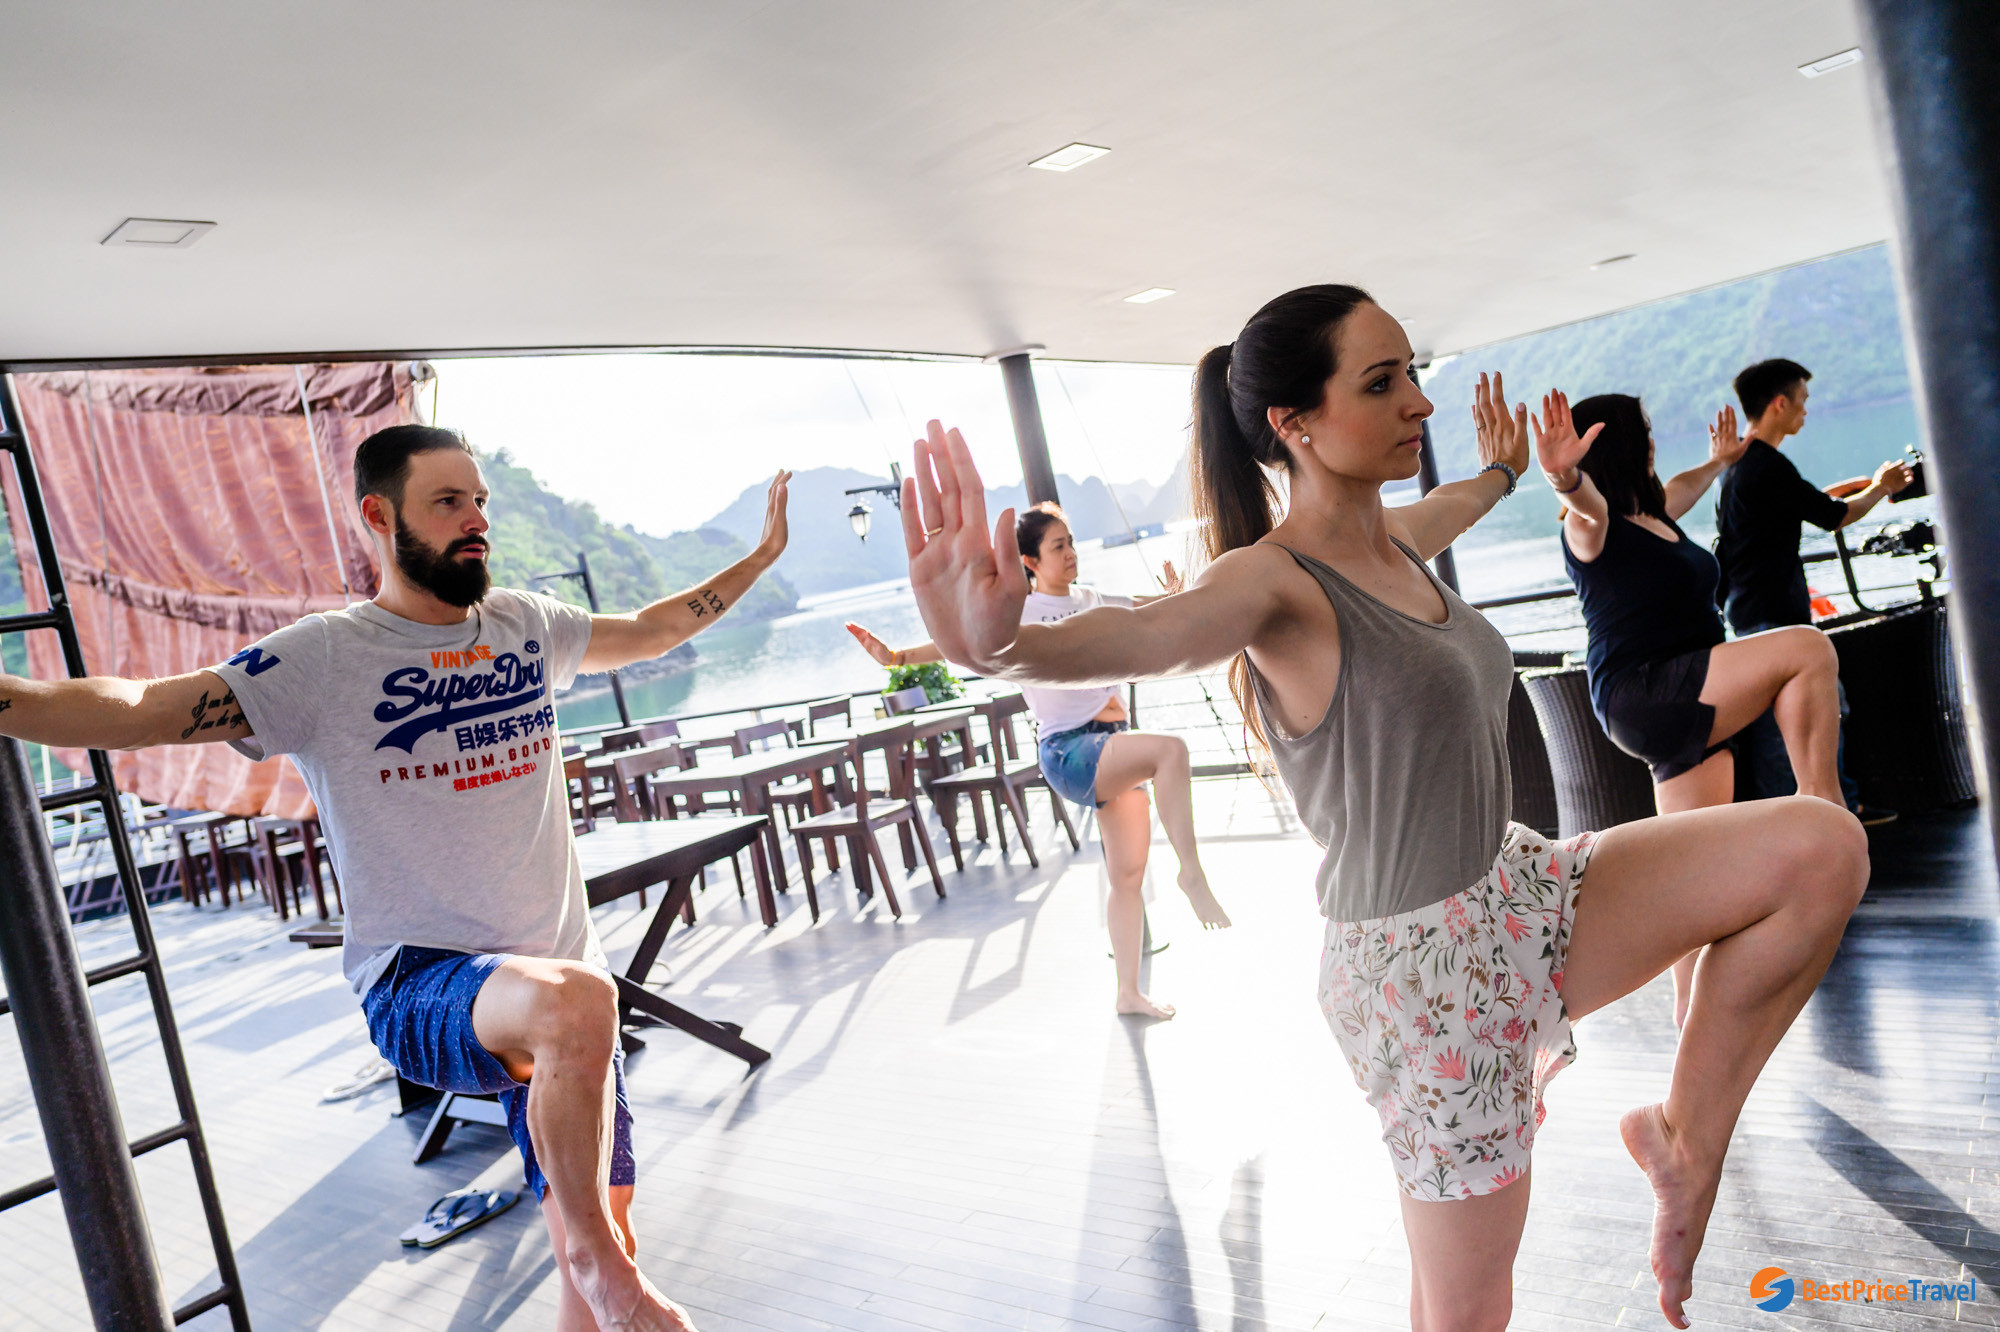 Tai Chi on Sun Deck of Mon Cheri Cruise